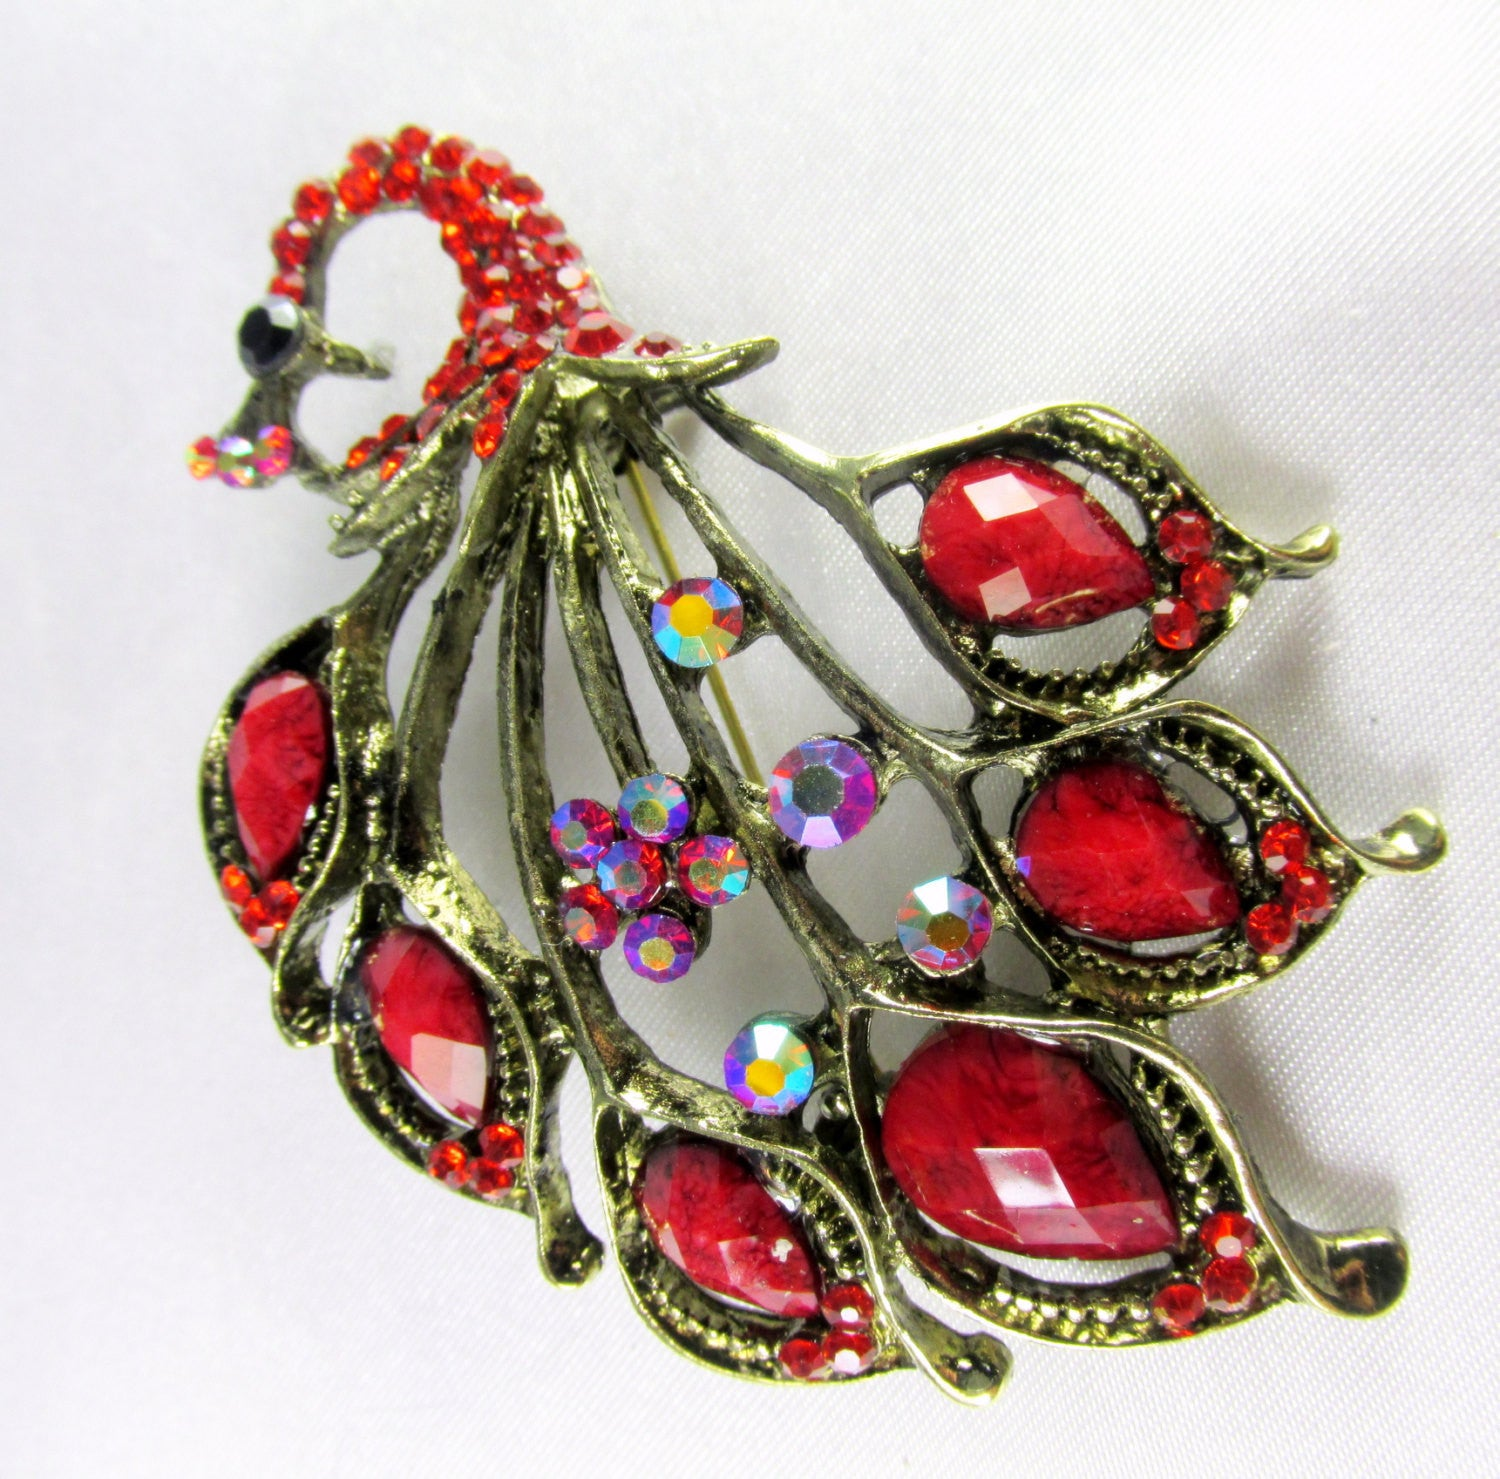 Marsala Red Peacock Brooch in Antique Gold - Odyssey Cache - 3